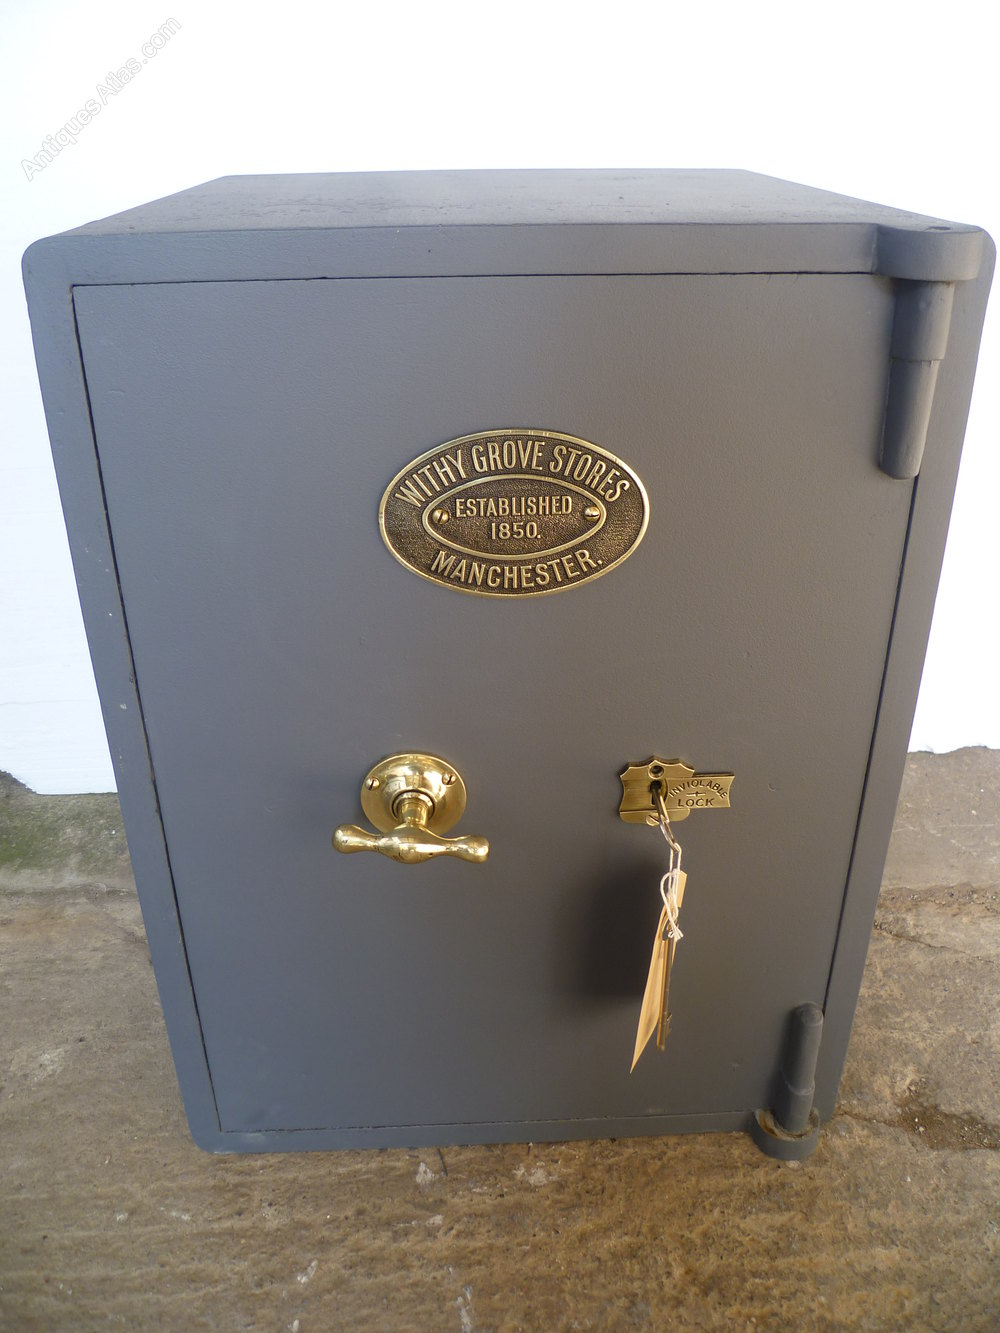 Antiques Atlas A Cast Iron Safe By Withy Grove Stores